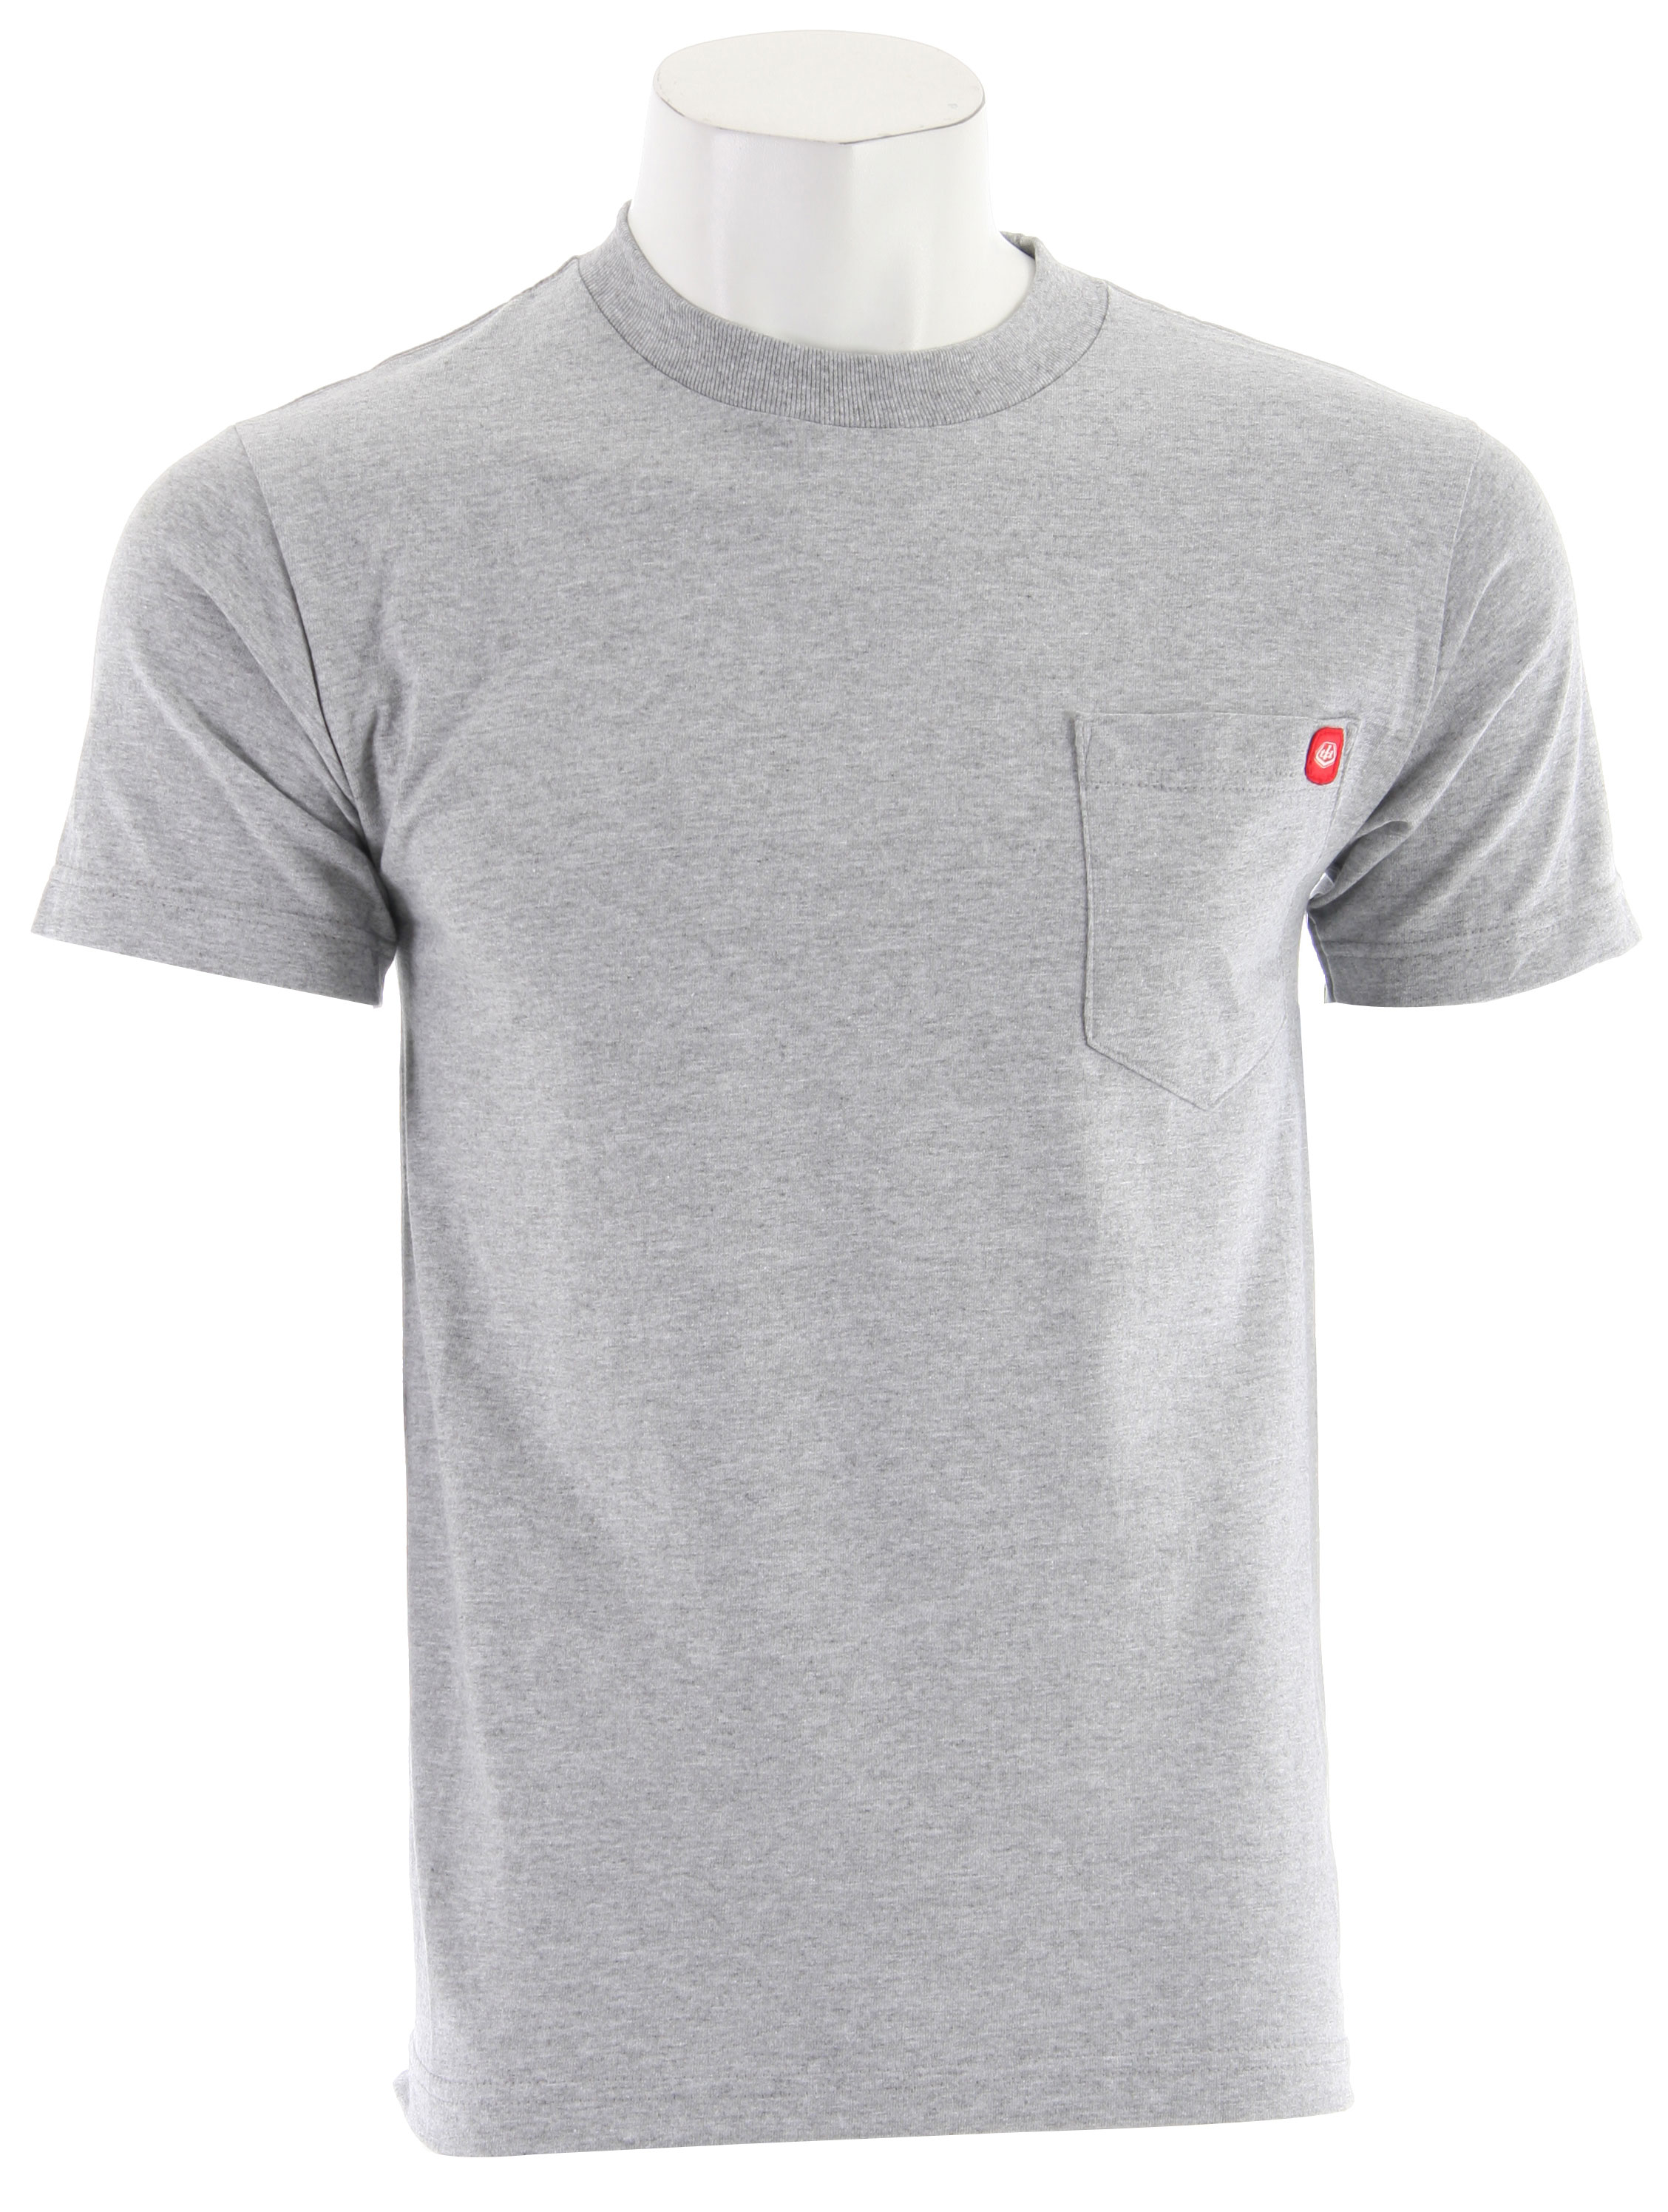 Key Features of The Troy Lee Designs Fuel T-Shirt: Regular Fit Crew Neck Short Sleeve - $6.96